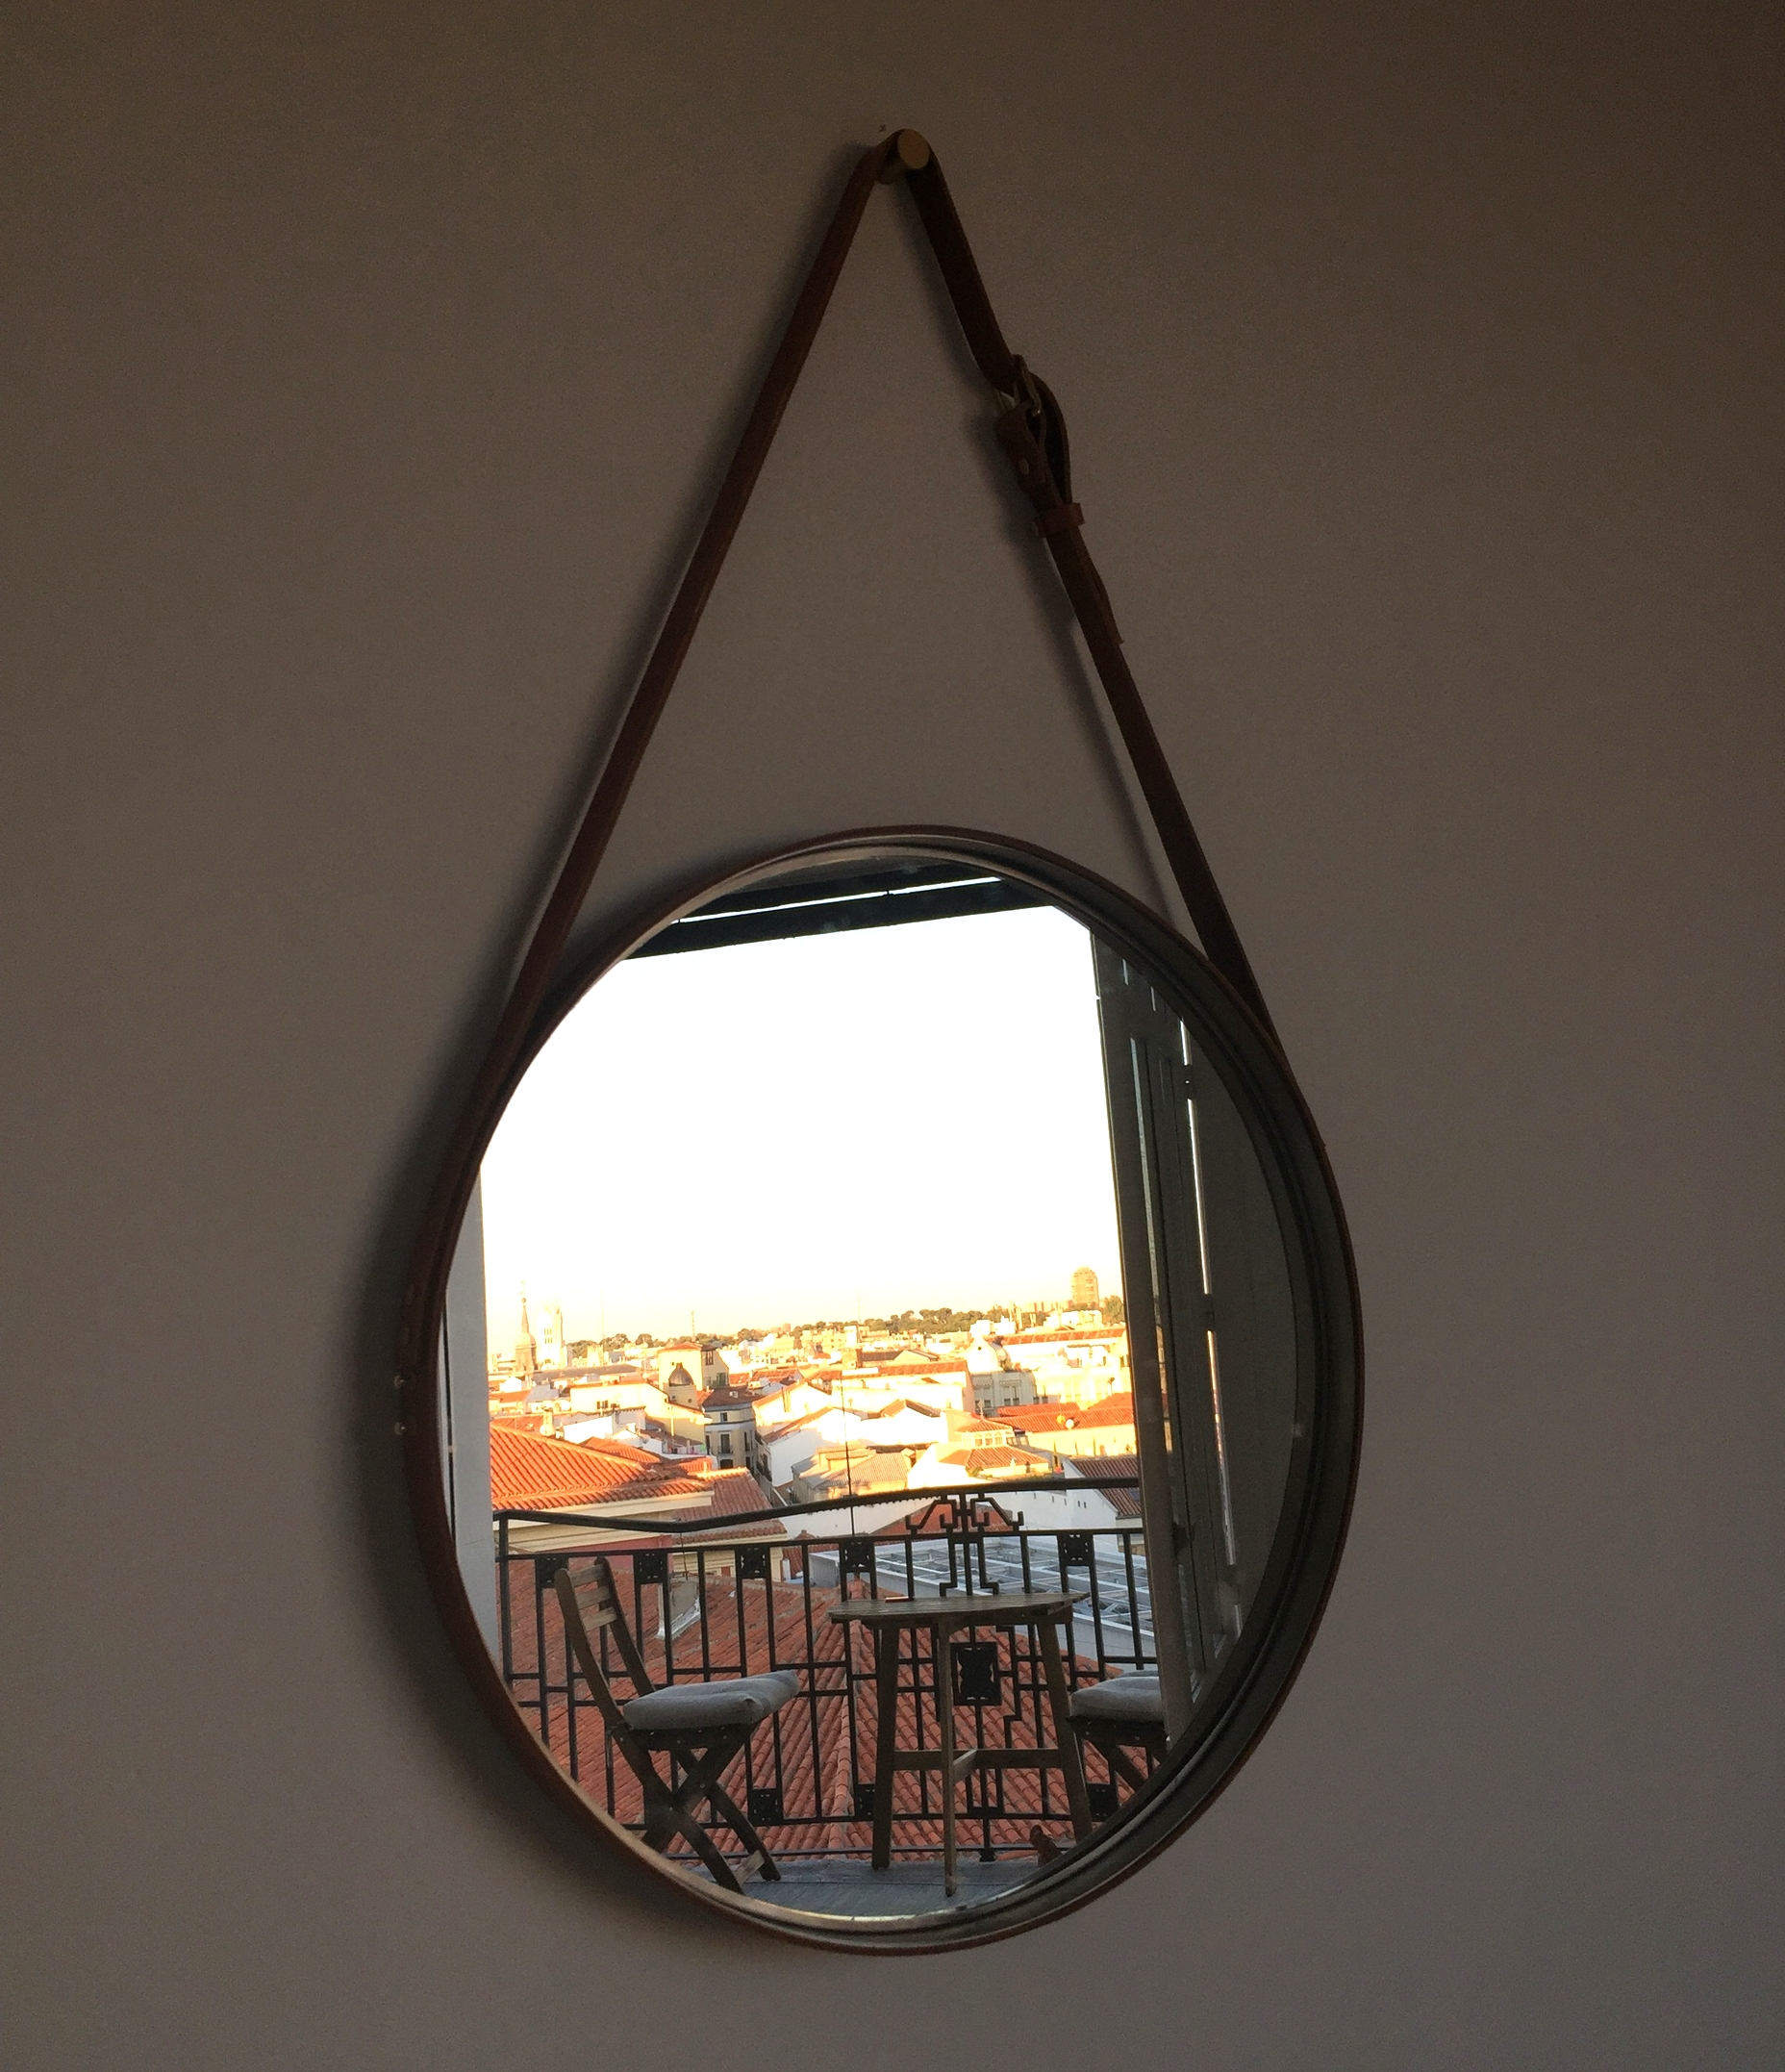 A beautiful view of Madrid to go with the beautiful Nobi Mirror.